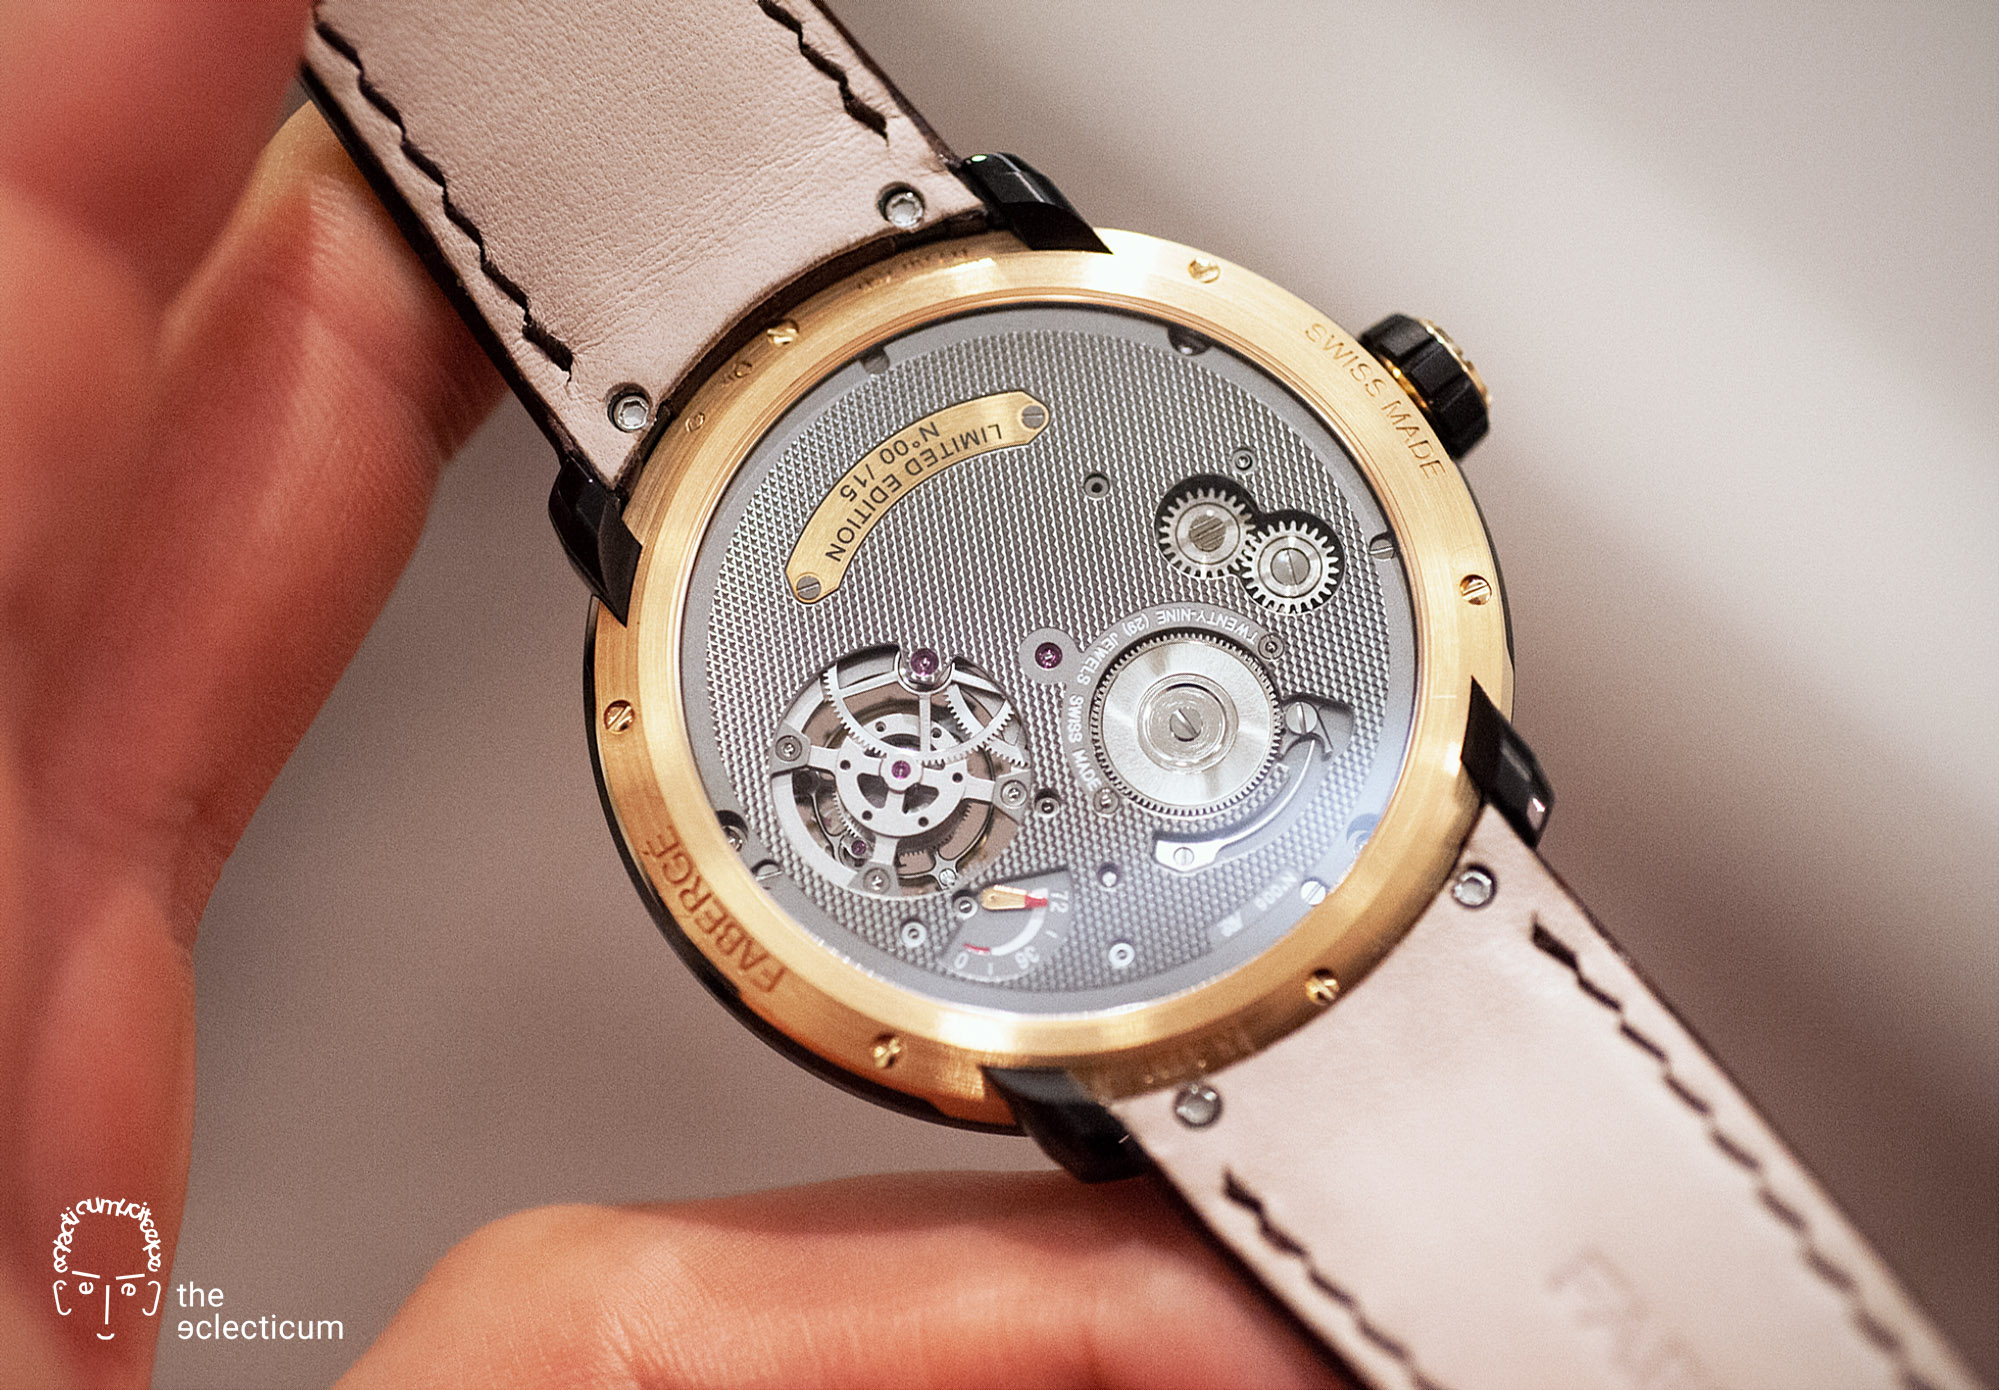 Faberge Visionnaire Tourbillon flying Renaud Papi guillochage movement Cal. TOF14